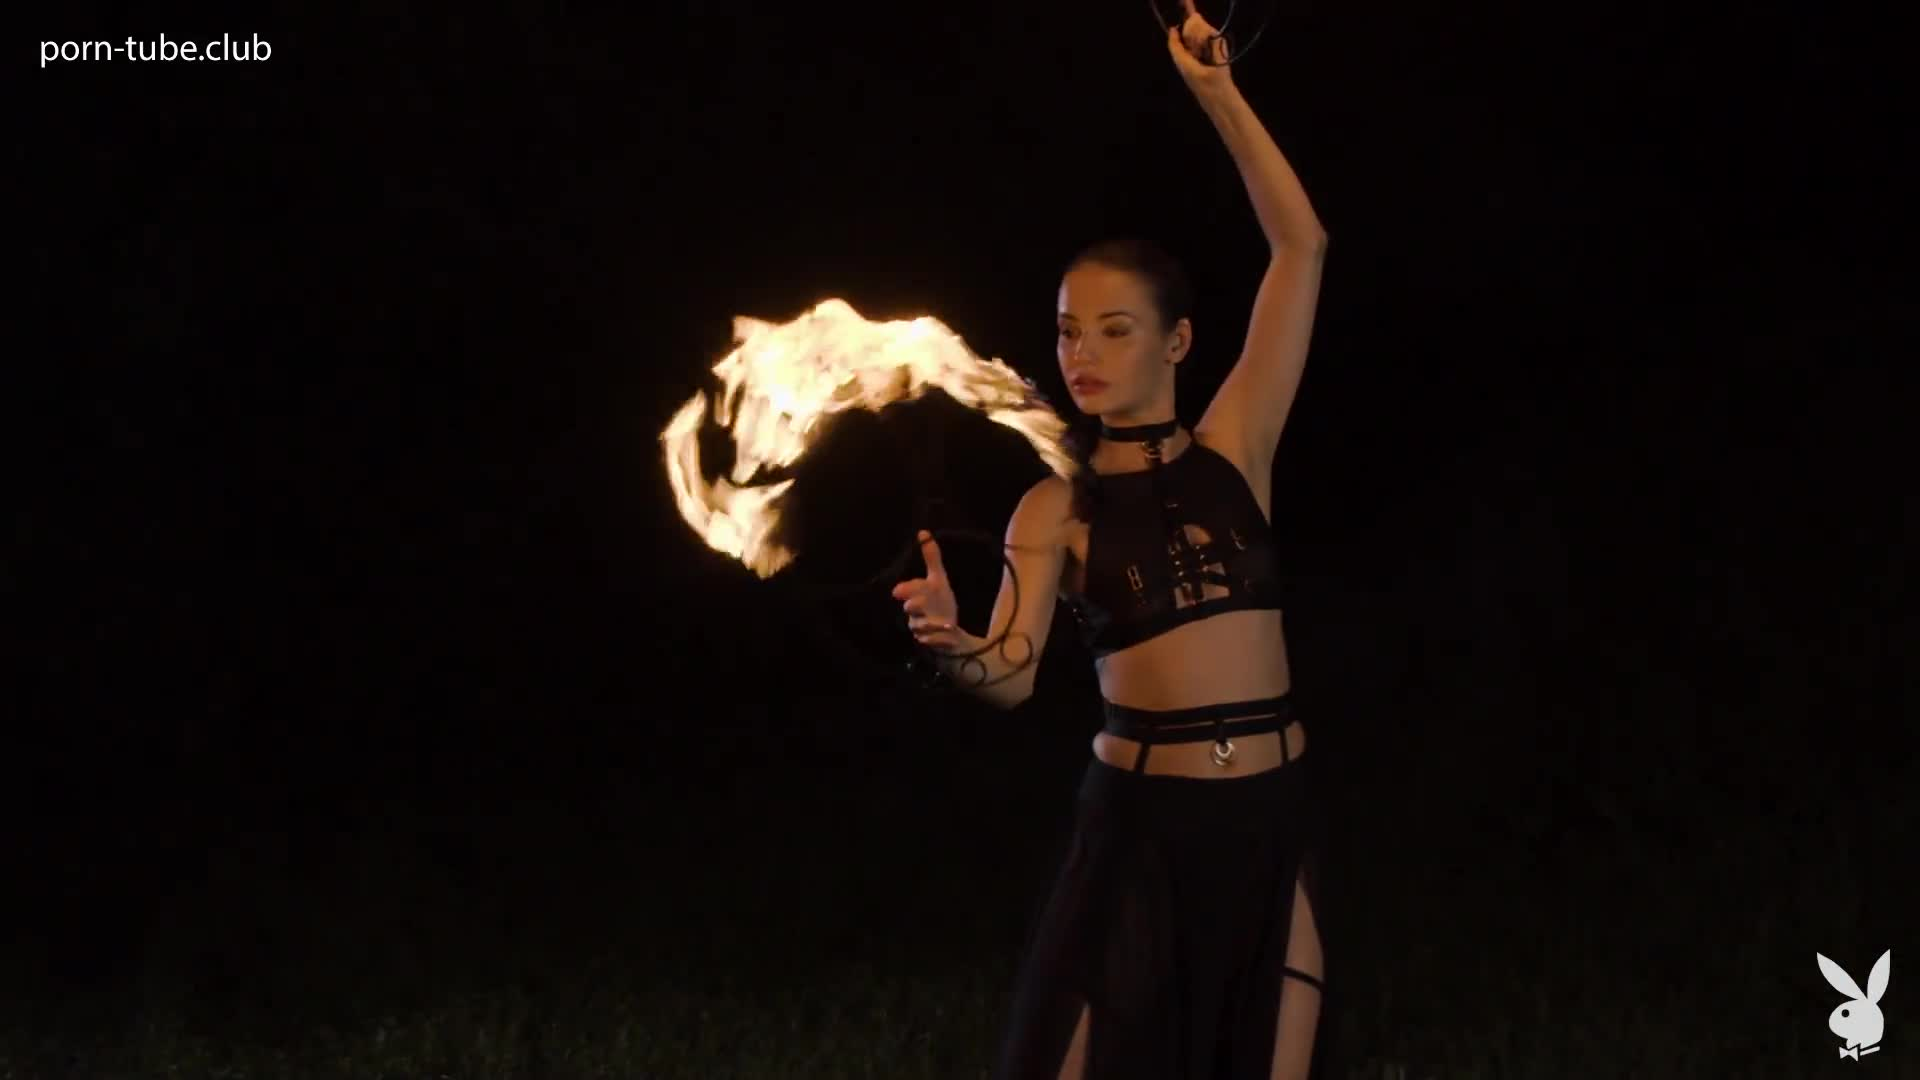 PlayboyPlus 20.10.23 Elilith Noir Playing with Fire